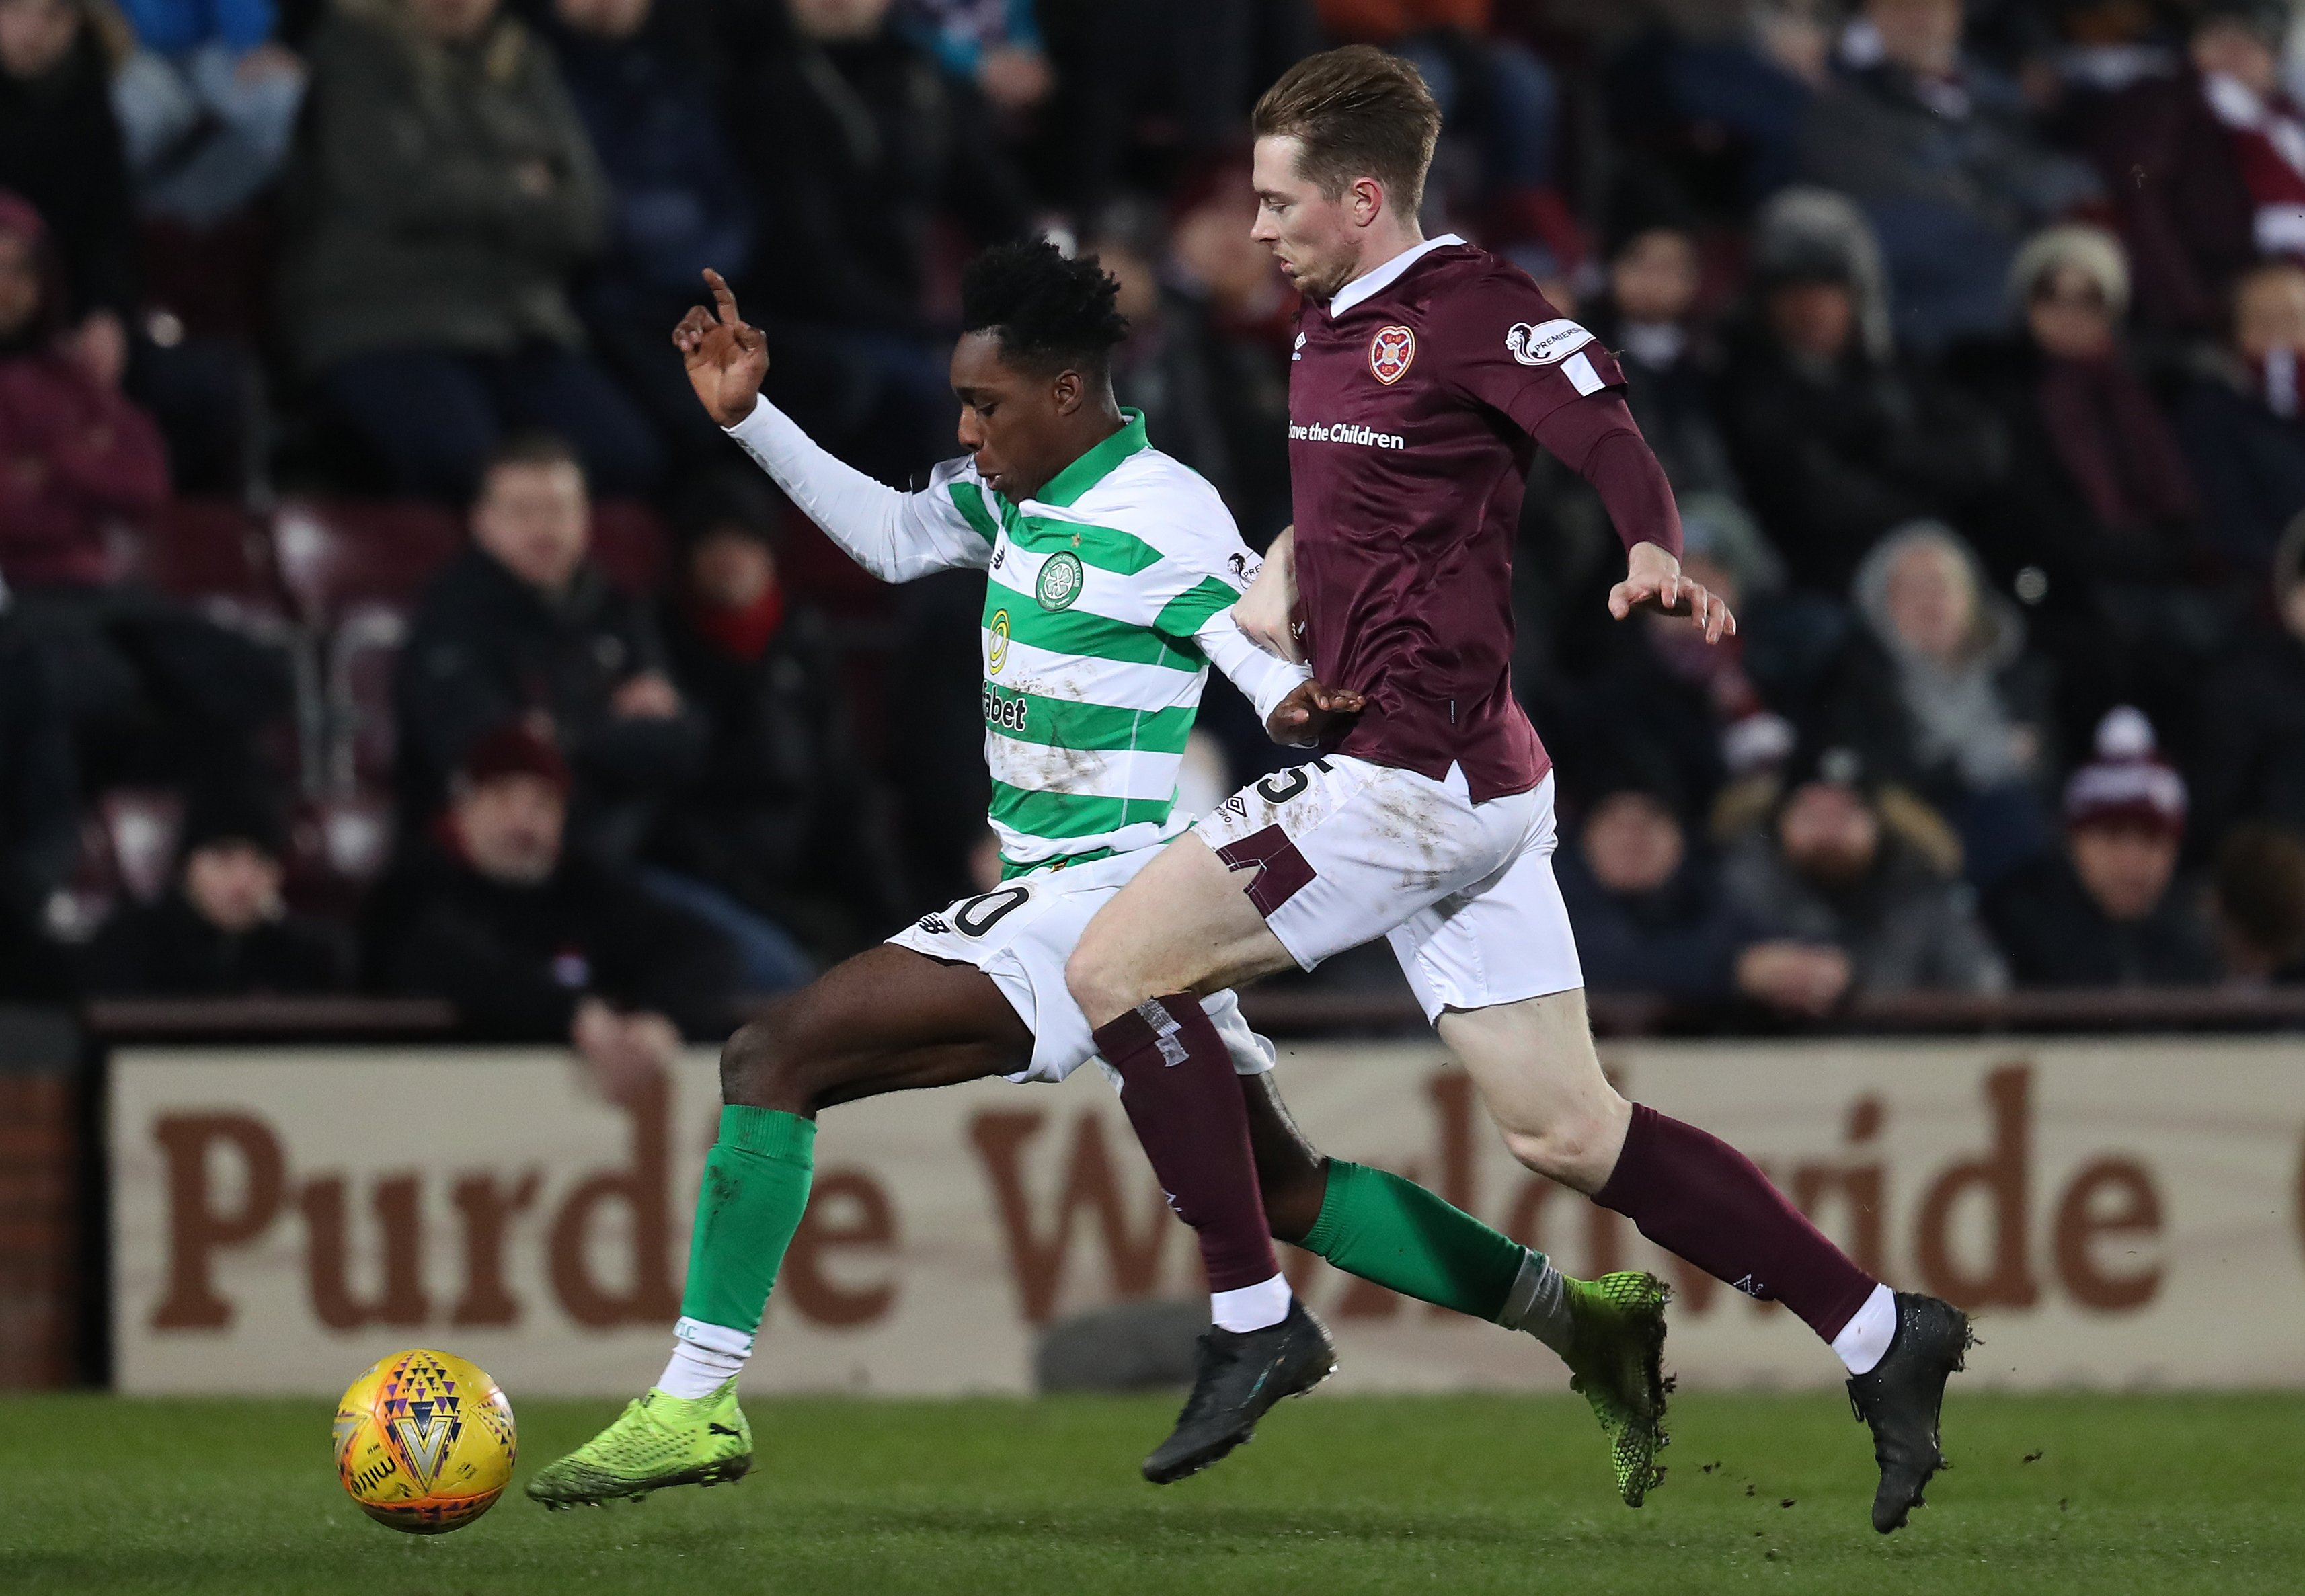 Craig Wighton continues fine start for Hearts with winner at Arbroath